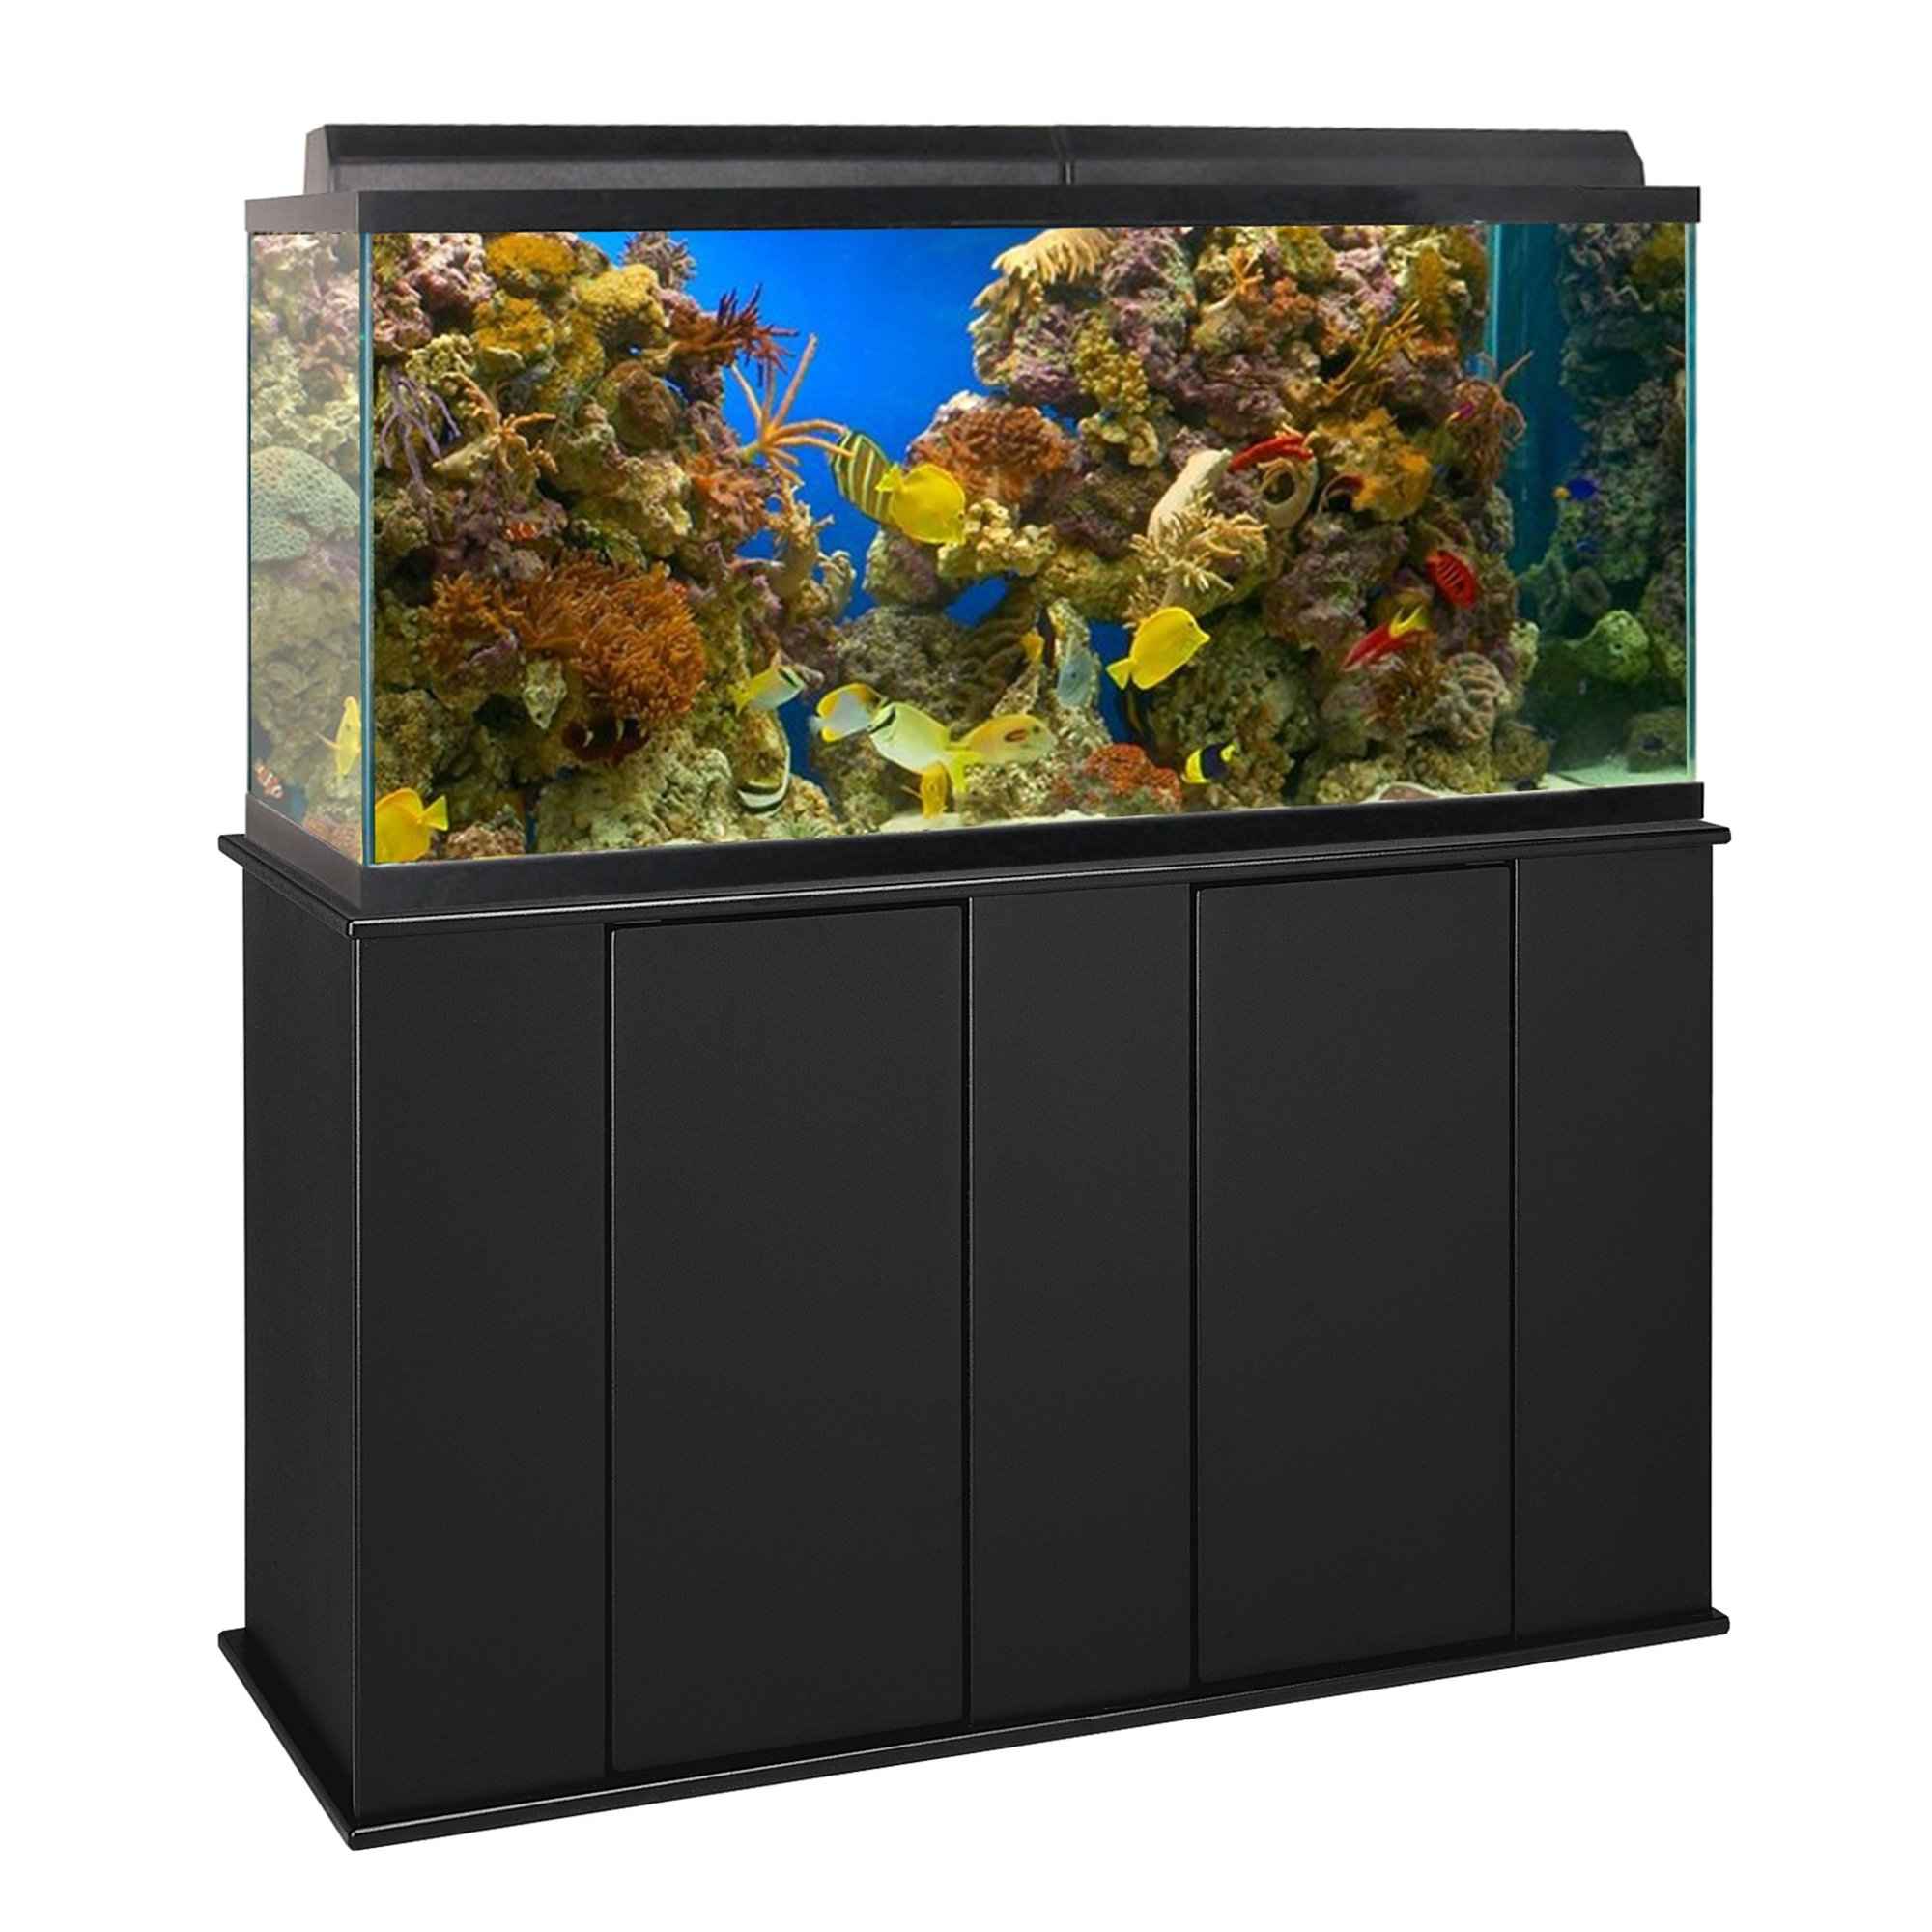 75 gallon aquarium petco 75 gallon upright aquarium stand 75 90 gallons petco store 2017. Black Bedroom Furniture Sets. Home Design Ideas